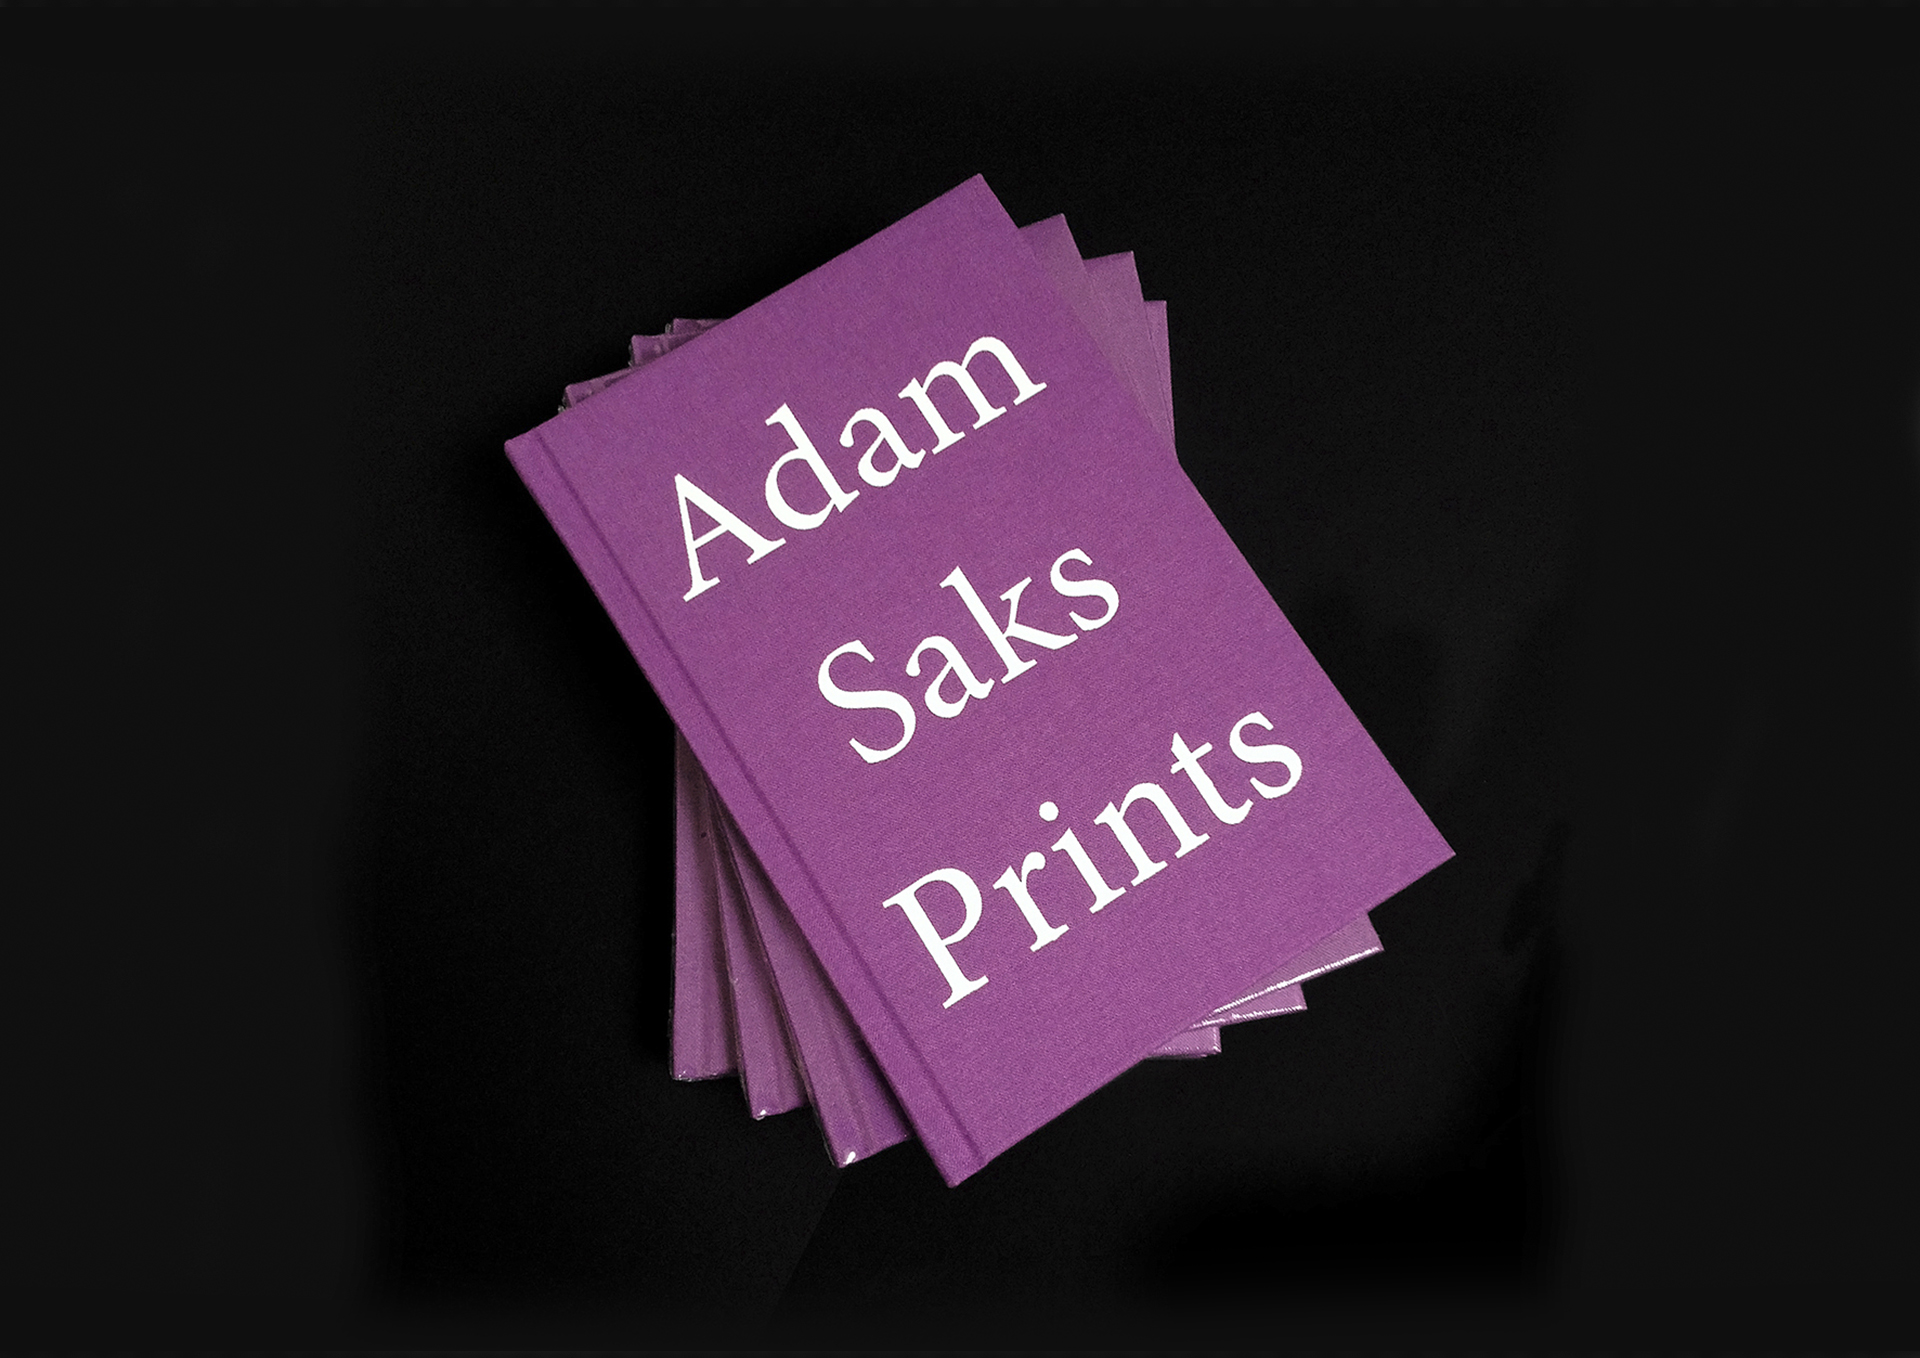 Adam Saks Prints